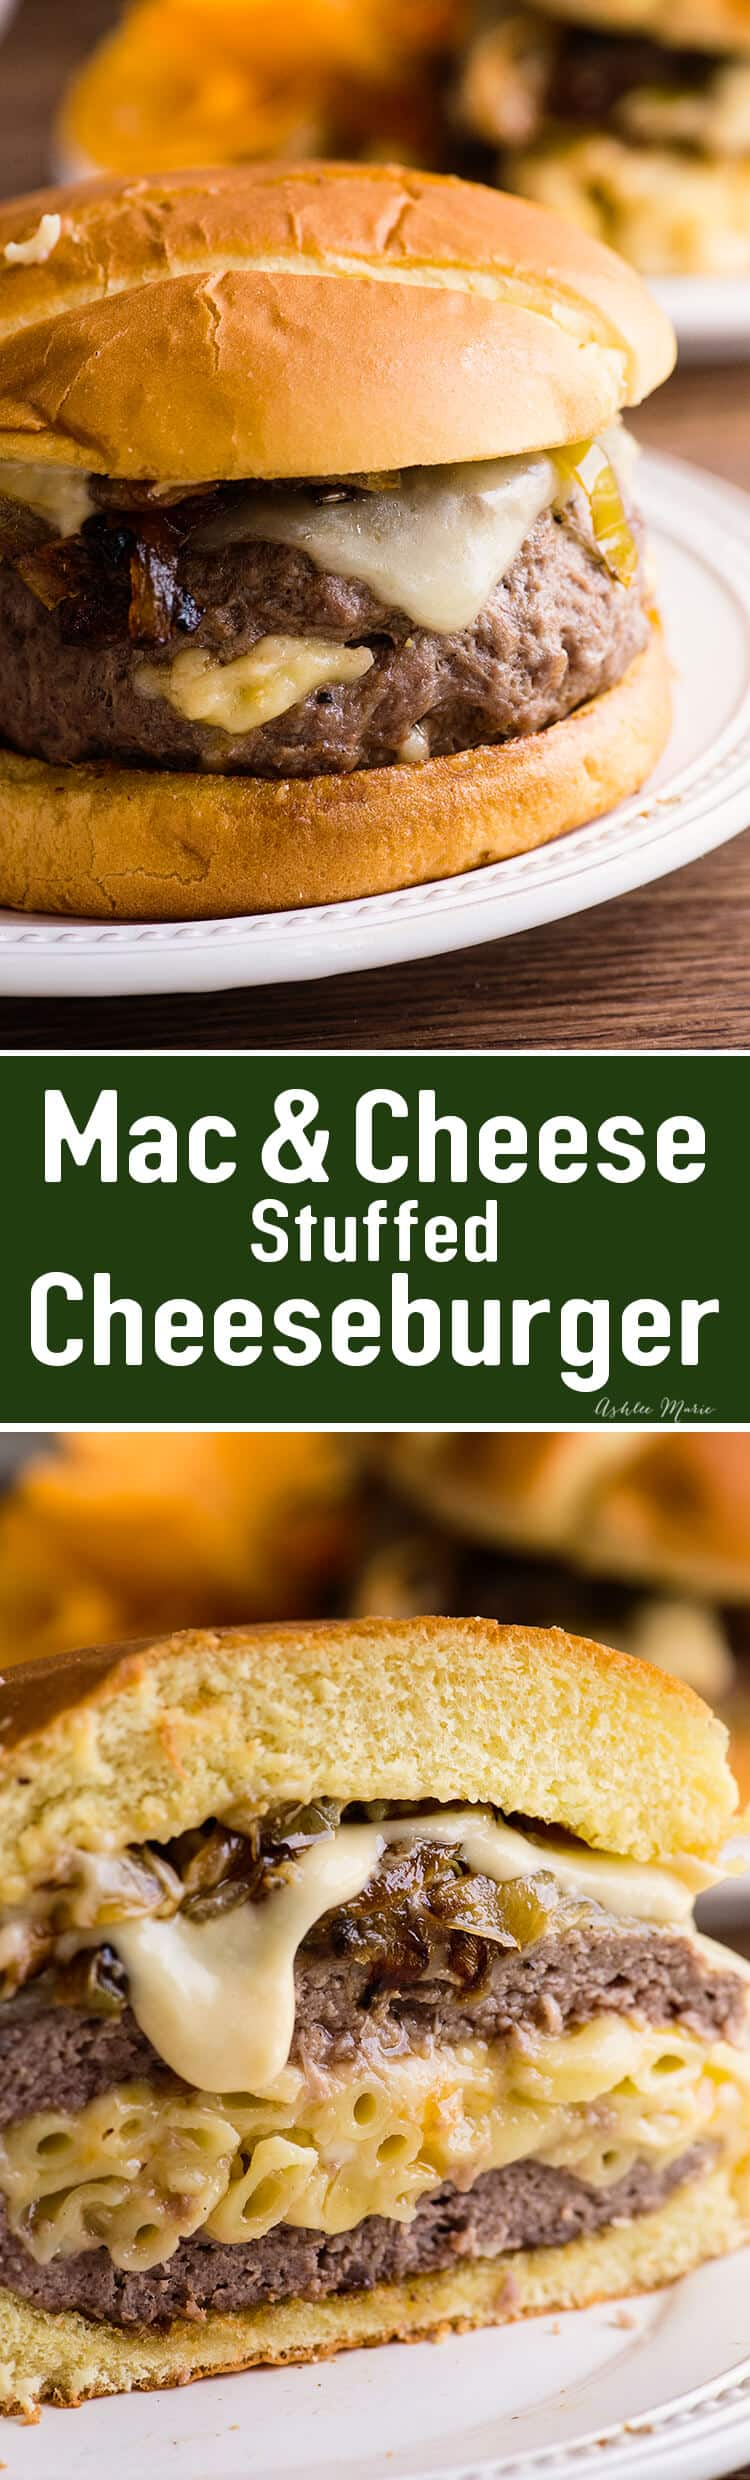 mouthwatering mac and cheese stuffed cheeseburger recipe and video tutorial